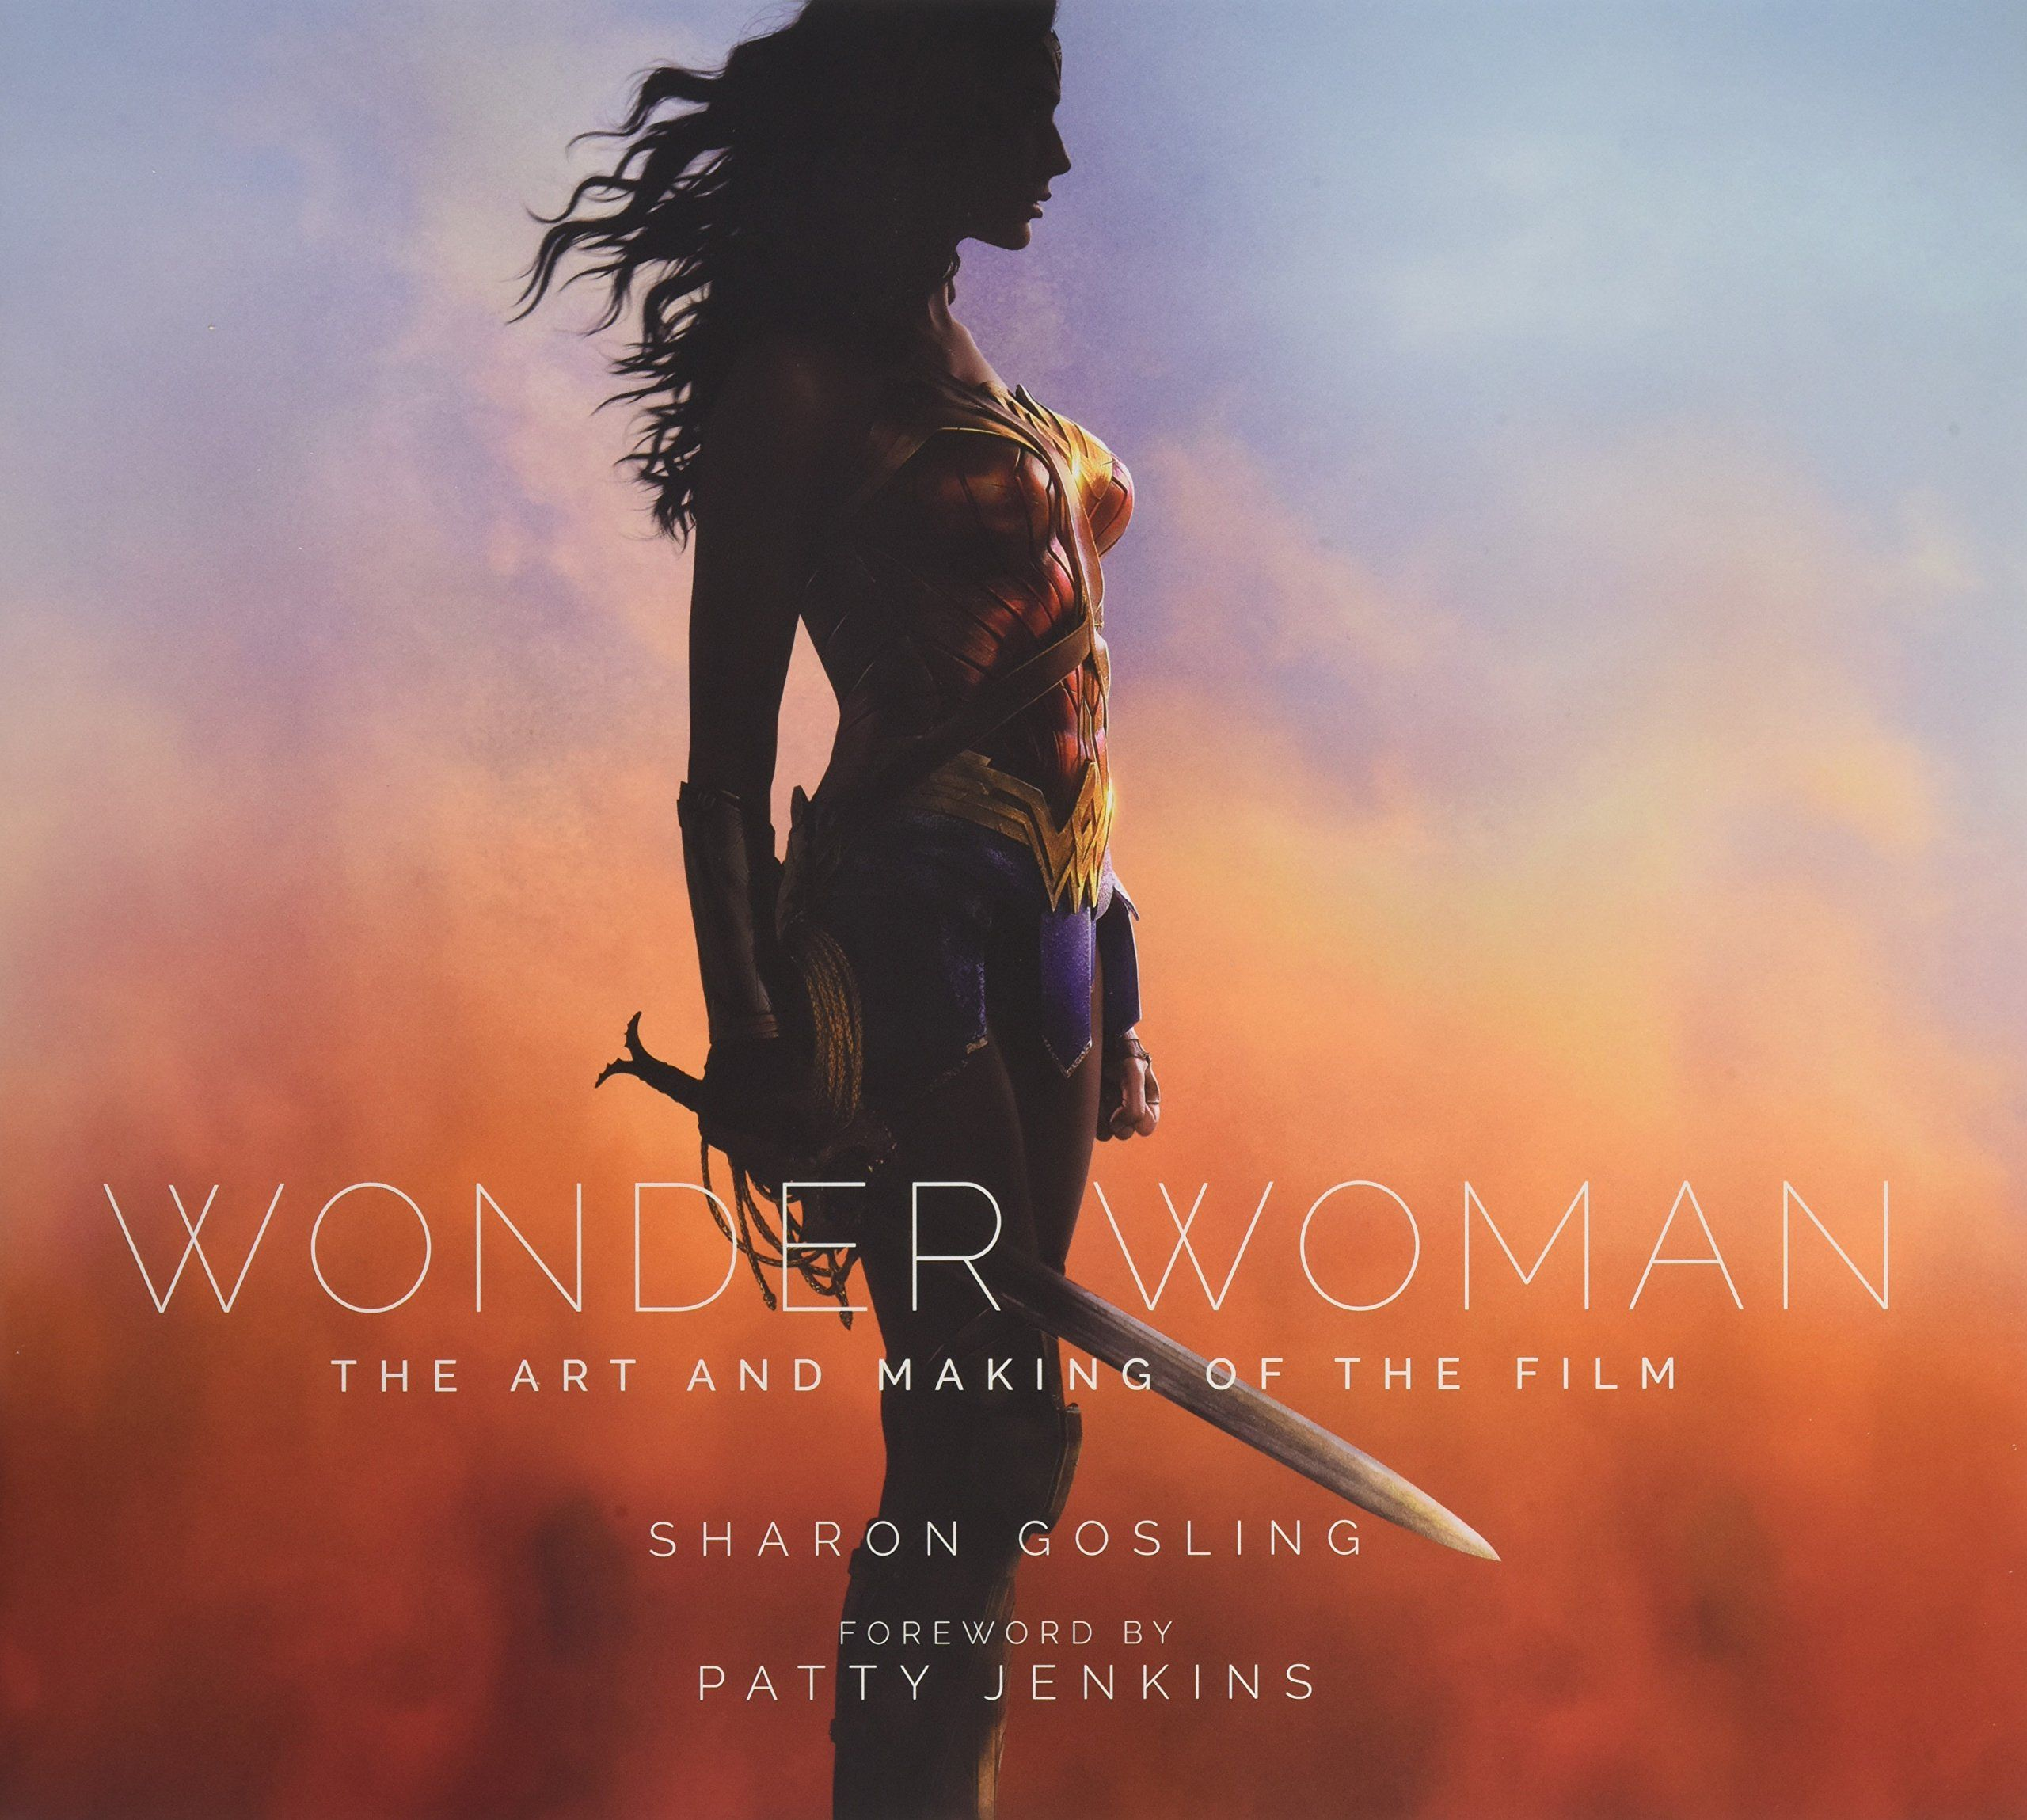 Wonder Book Cover Art : Wonder woman the art and making of film book review